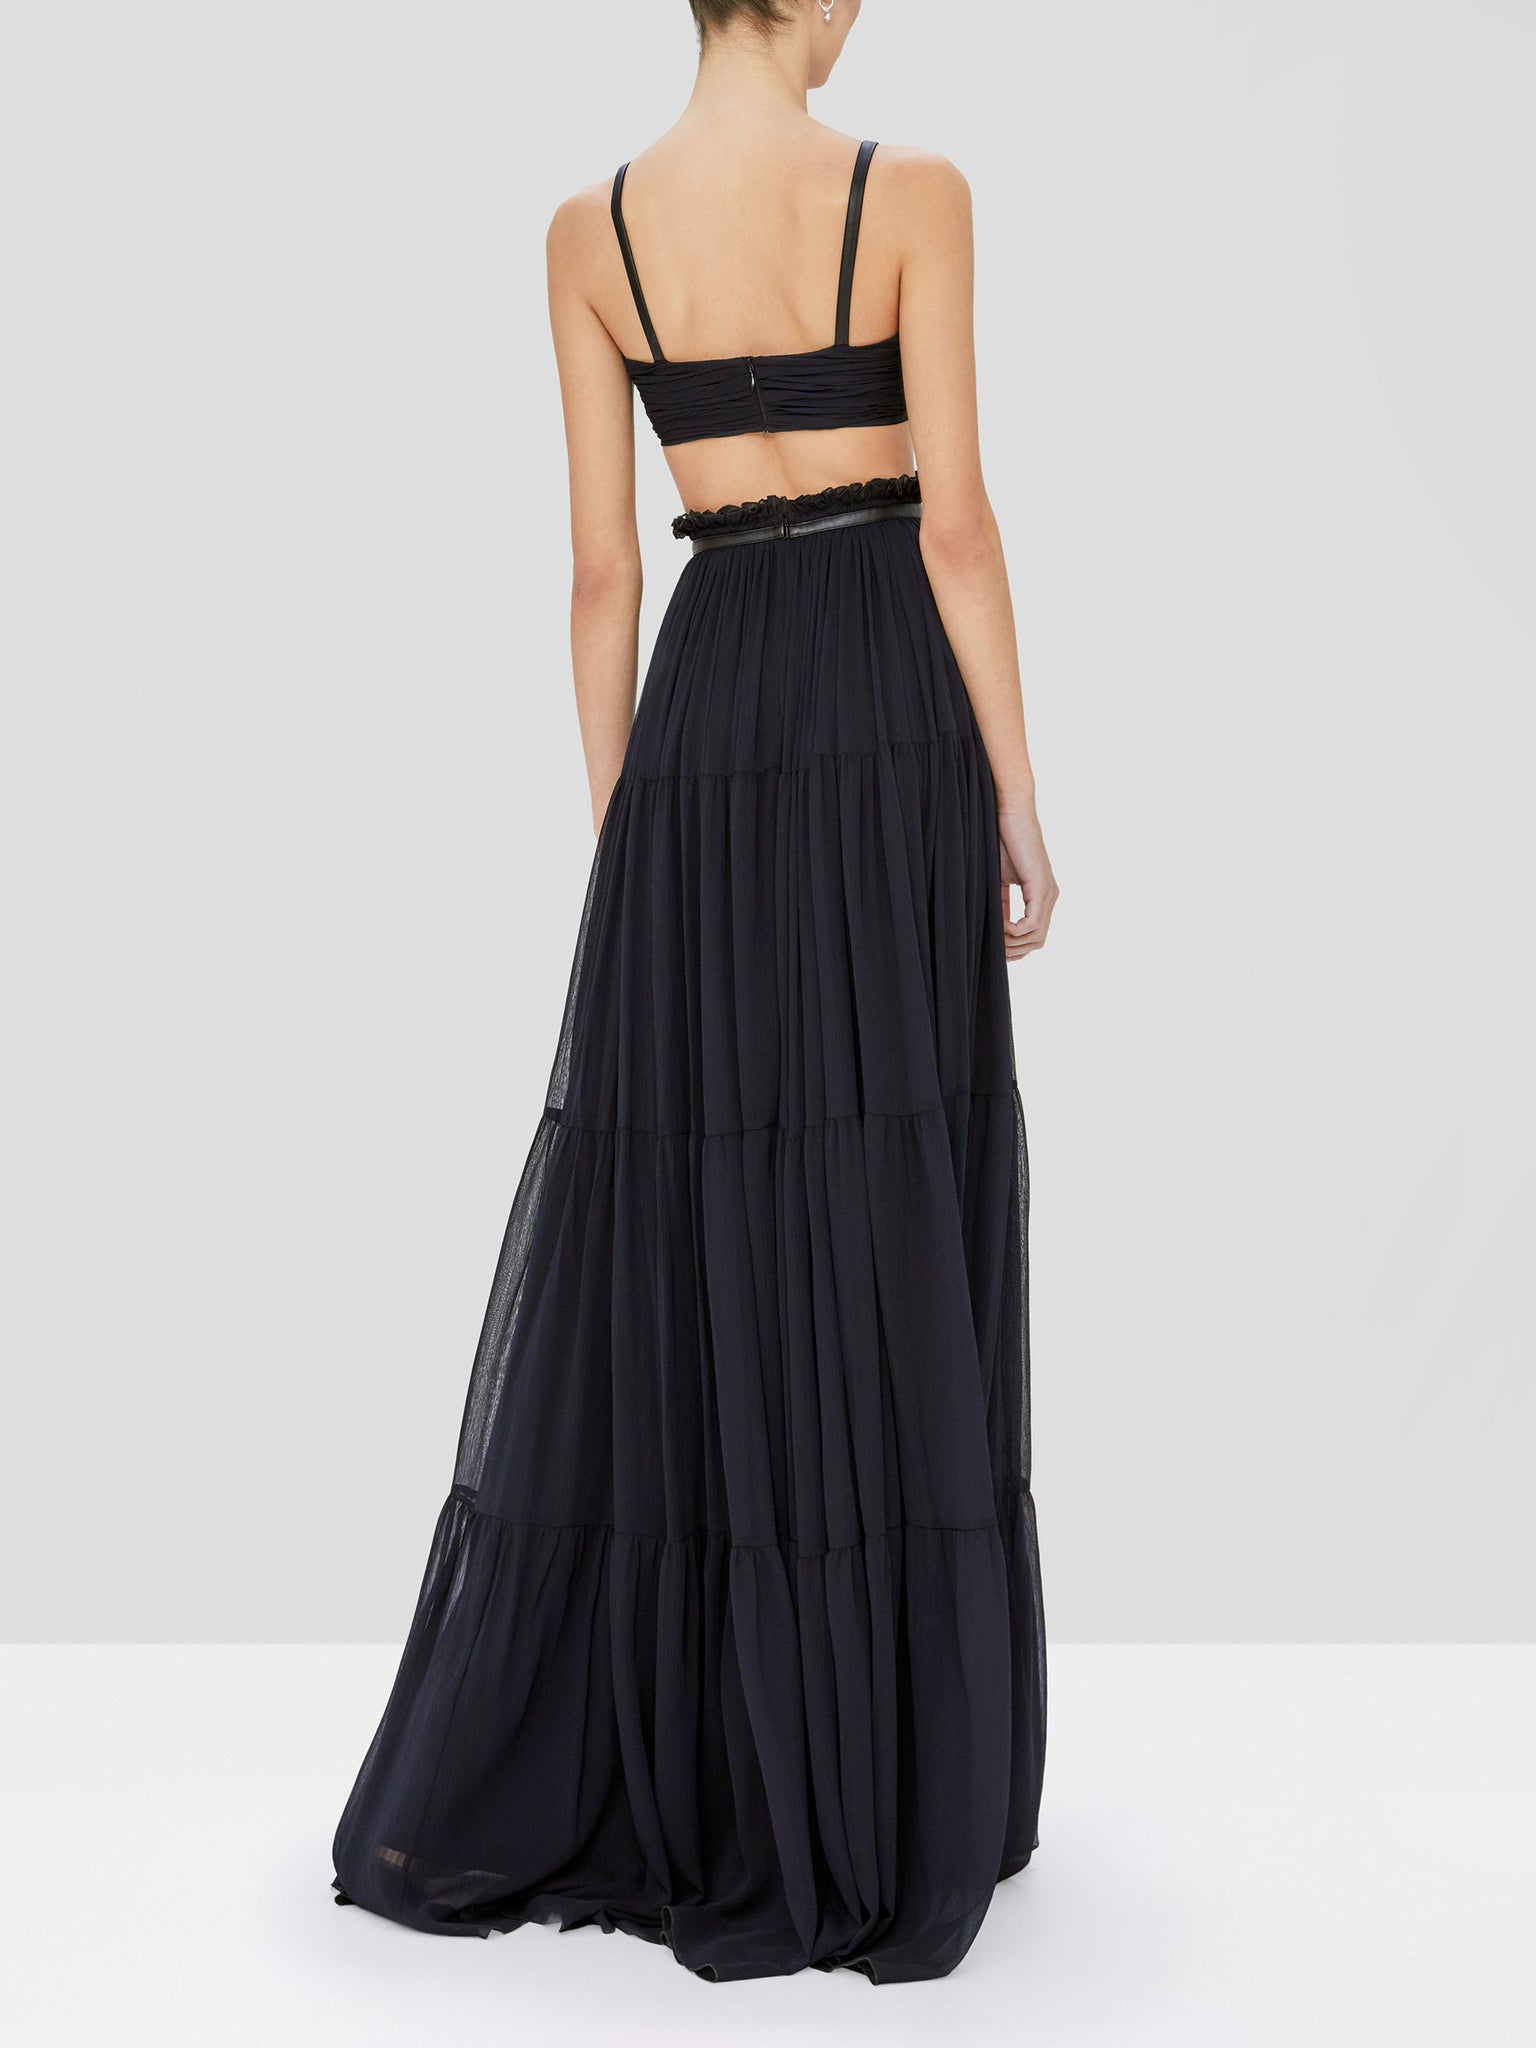 biharie dress in black - Rear View